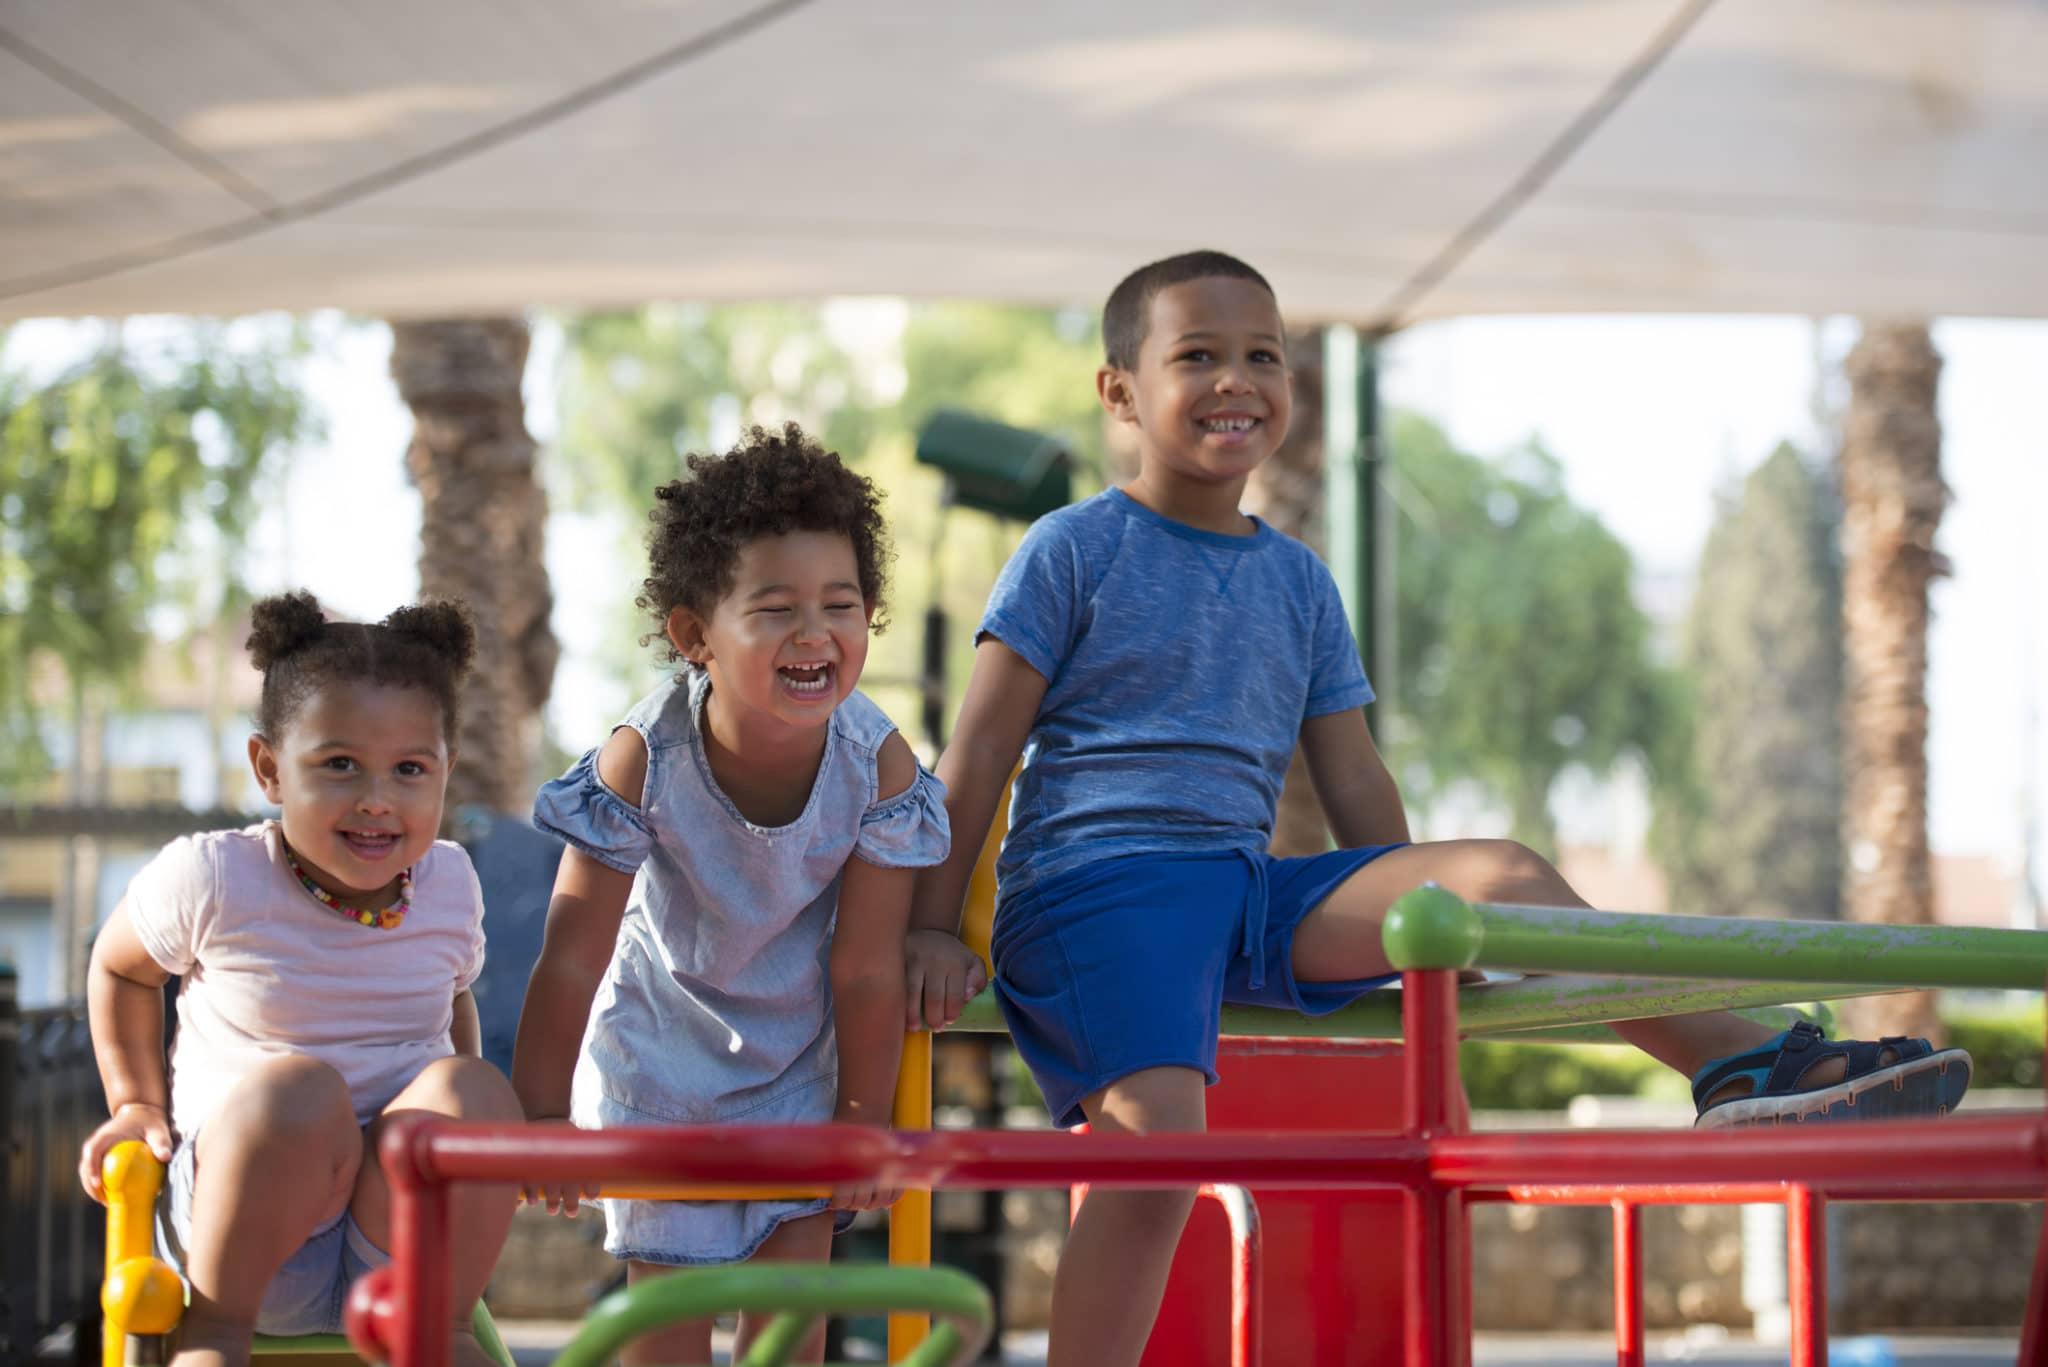 Children Sitting on a Playground in Israel